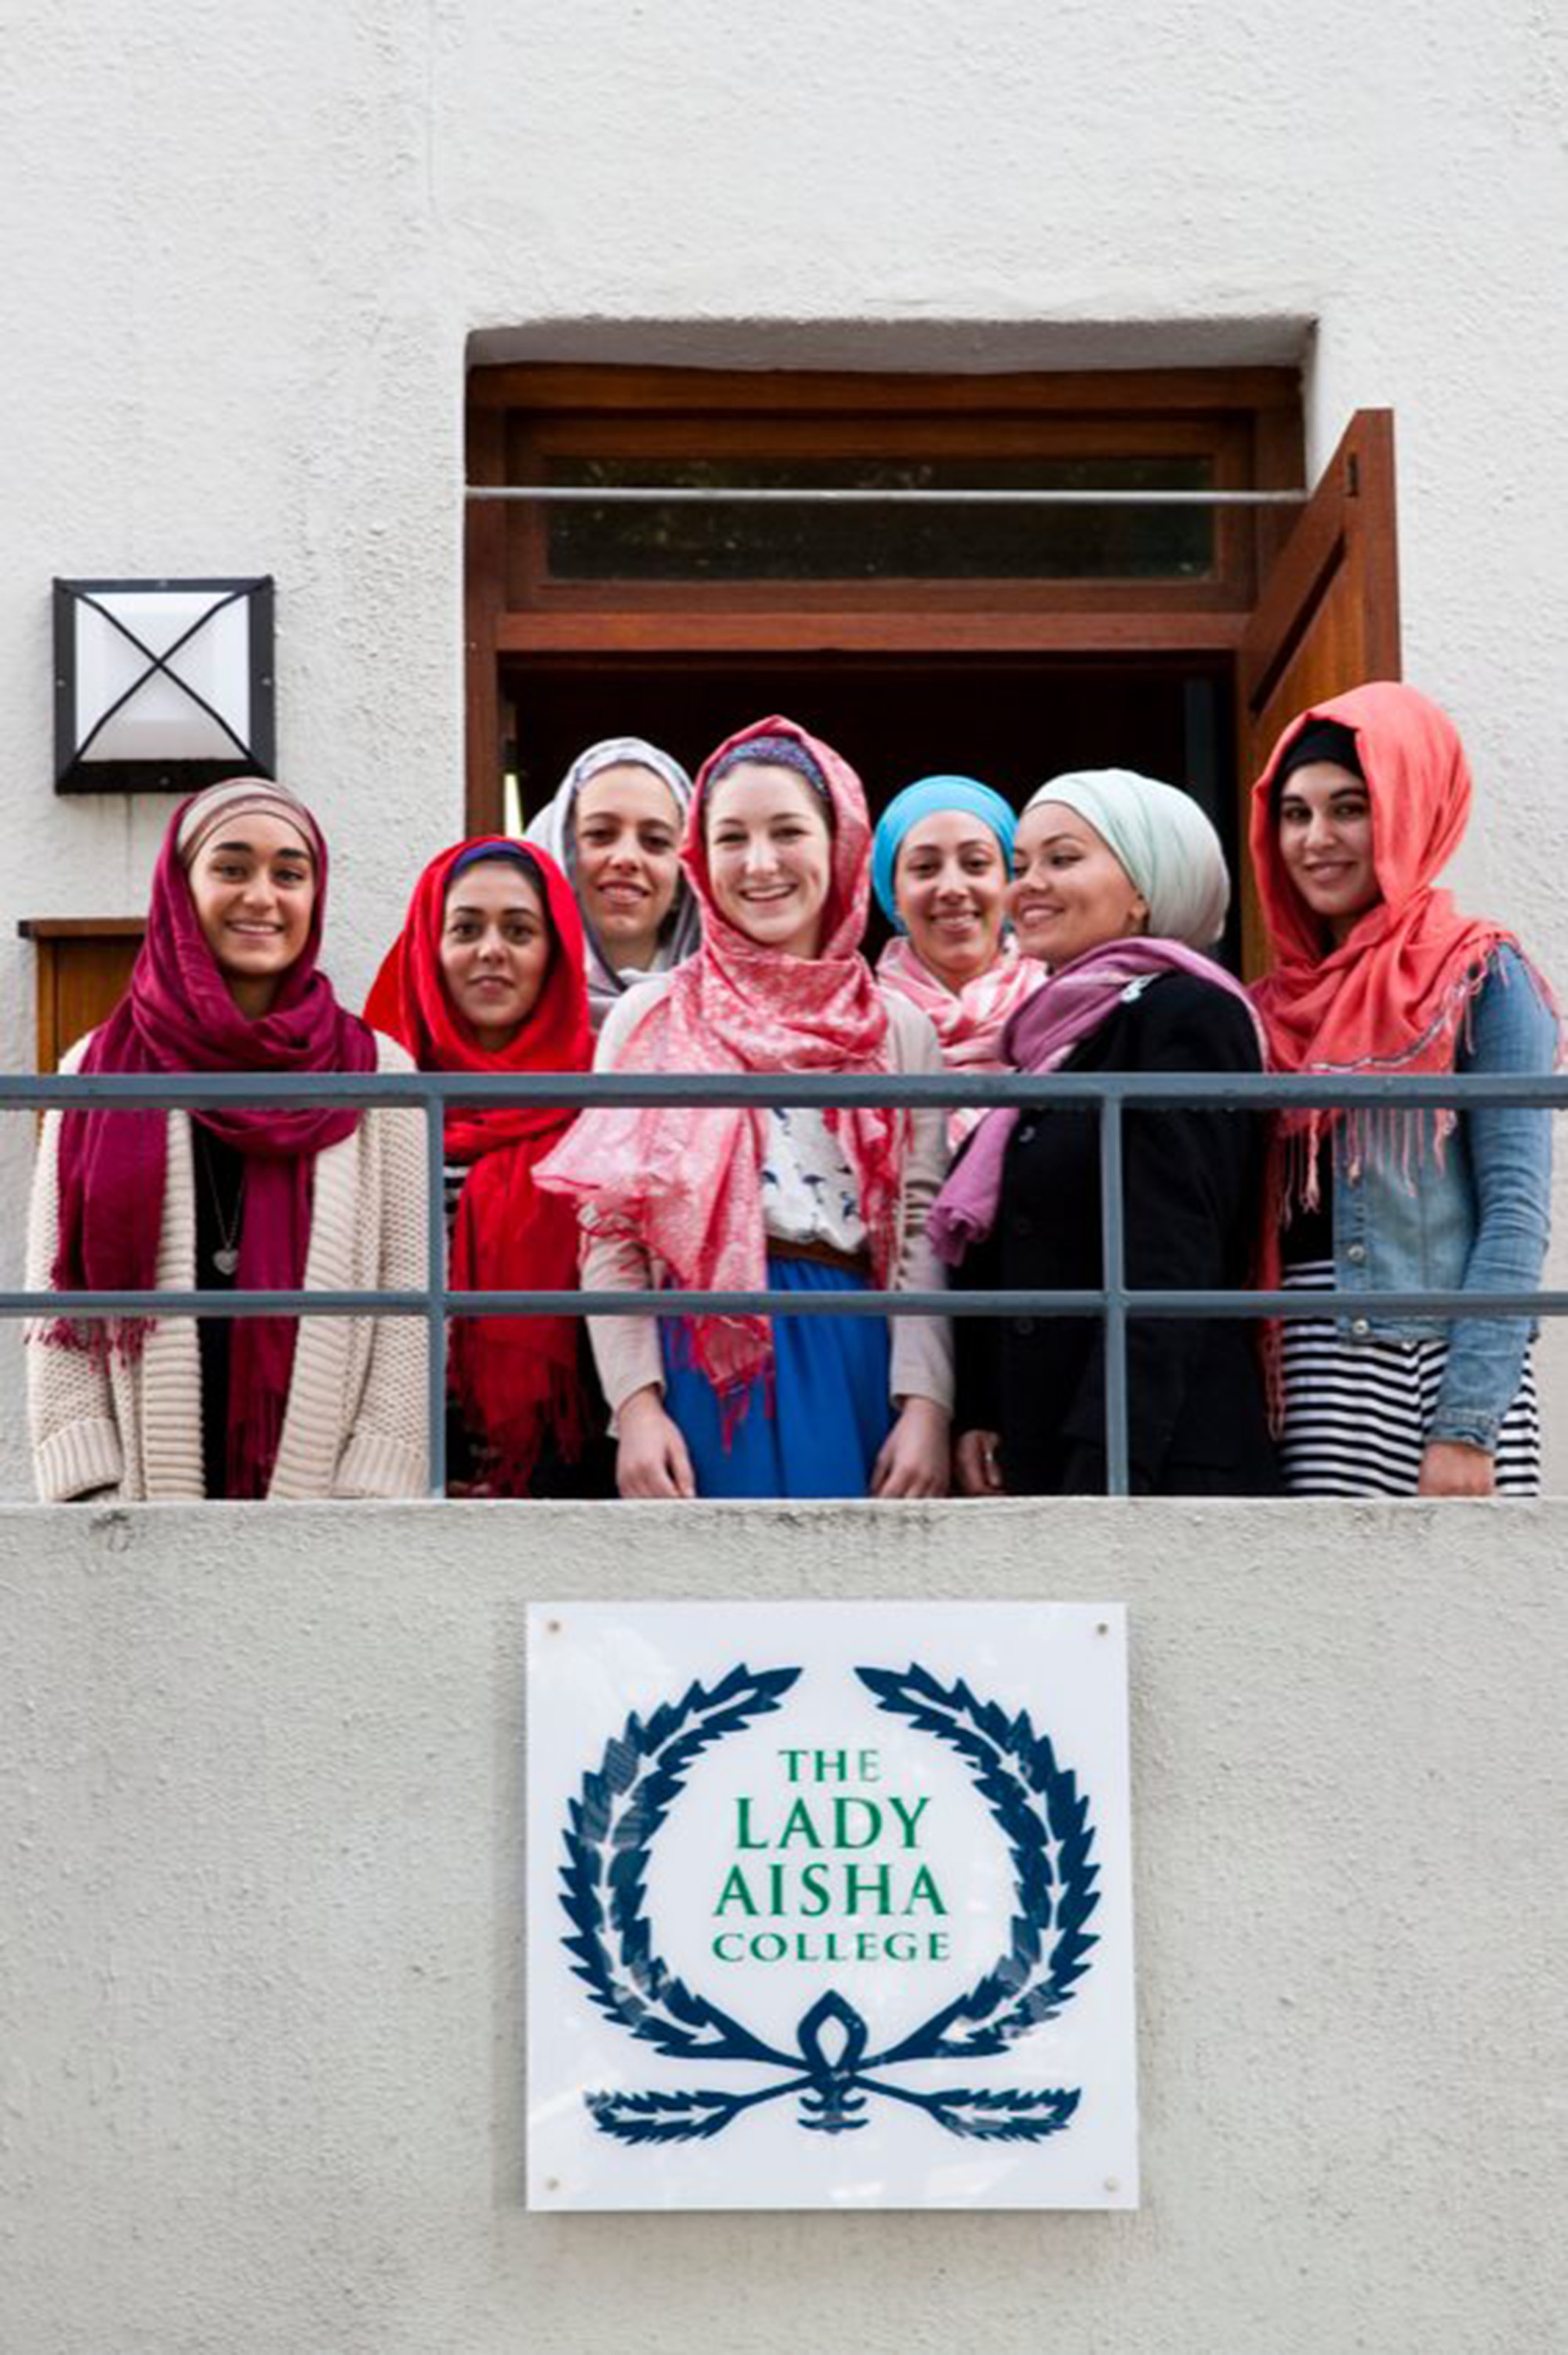 Lady Aisha College